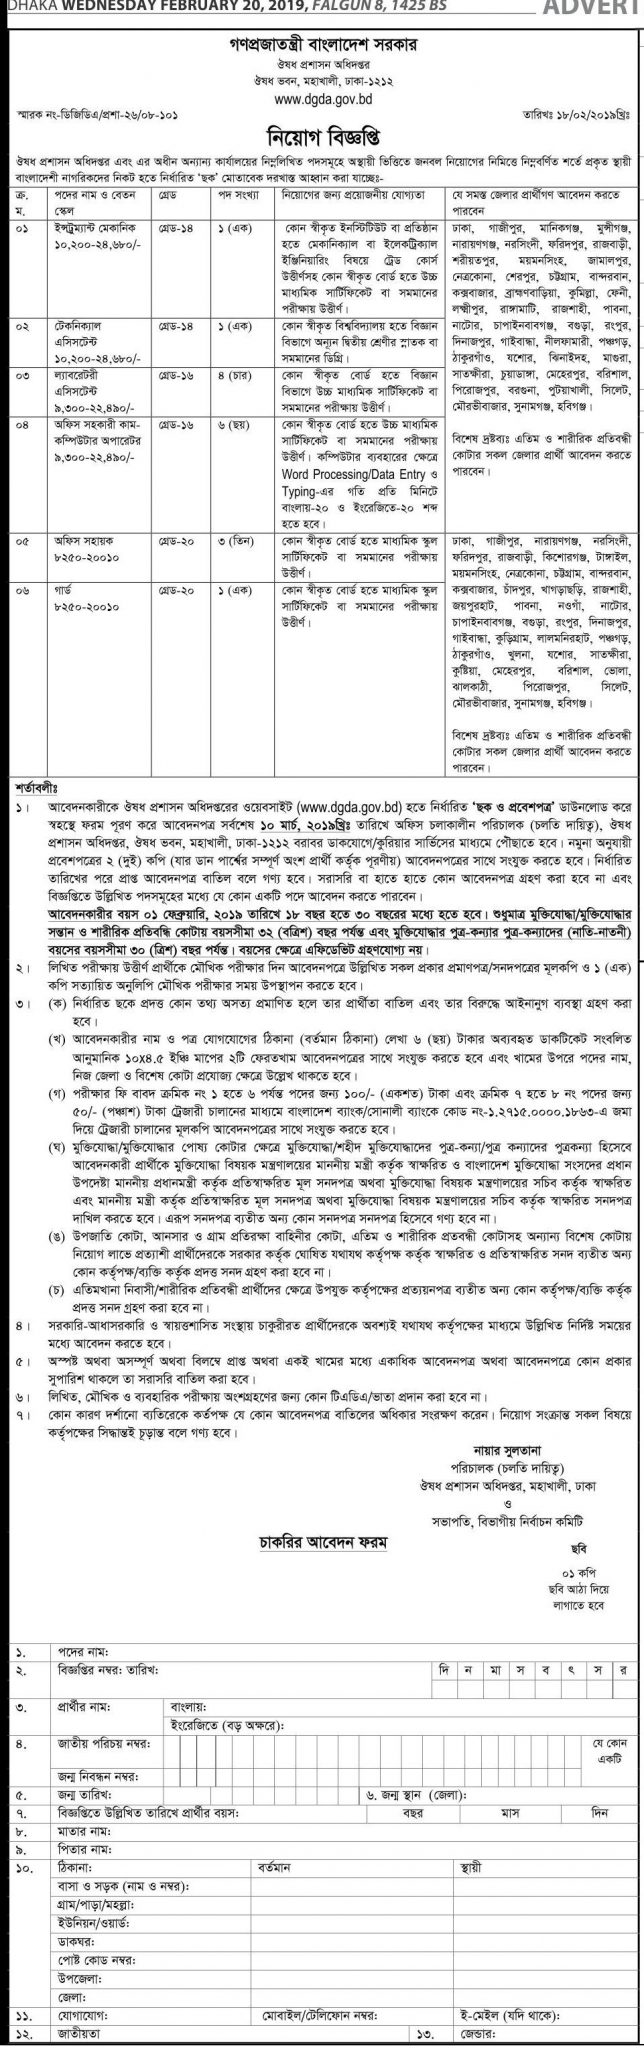 Bangladesh Directorate General of Drug Administration Job Circular 2019